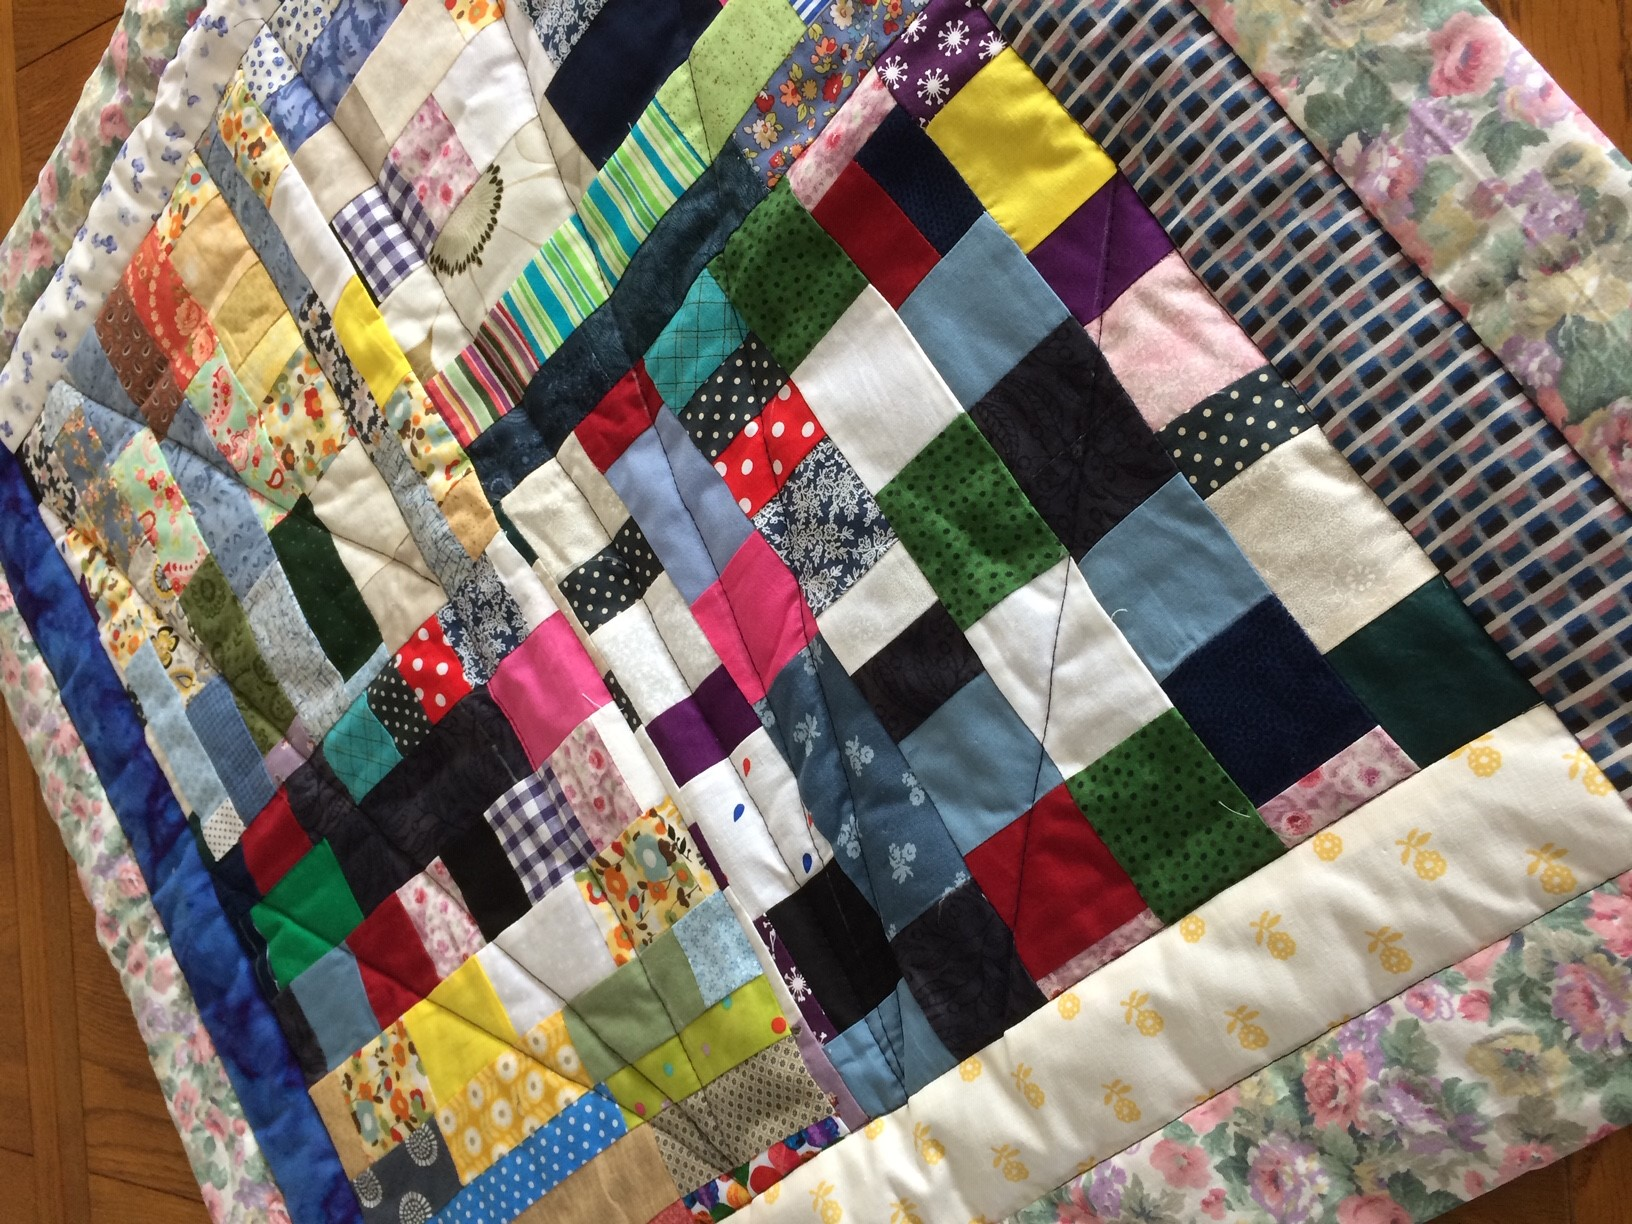 Leading PPE manufacturer donates surplus fabric to quilting project for vulnerable people